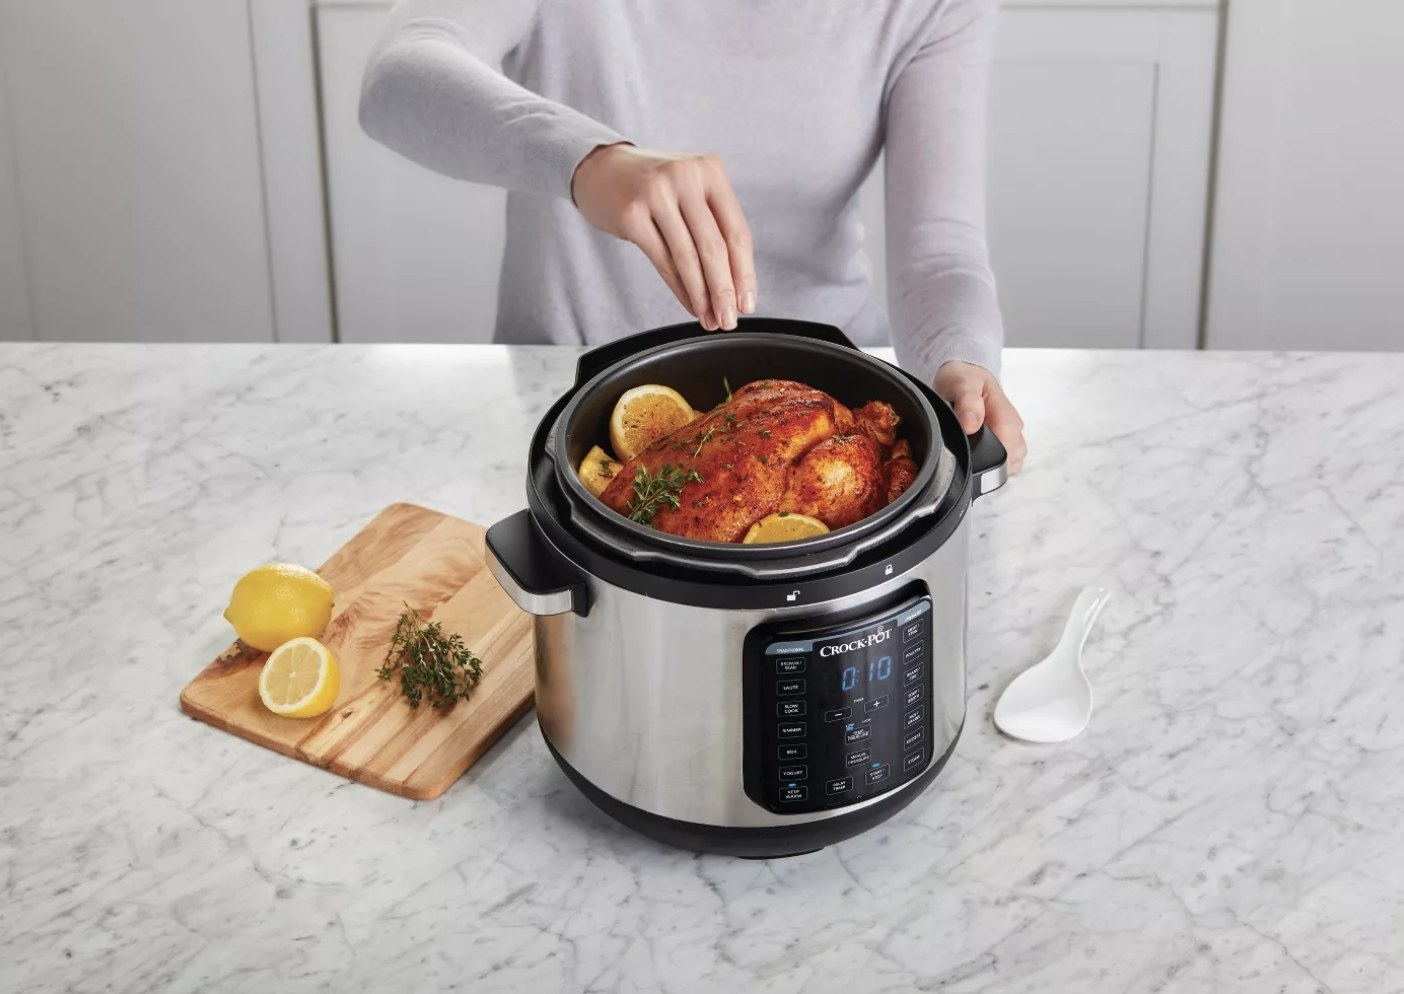 a model cooking a chicken in the crockpot